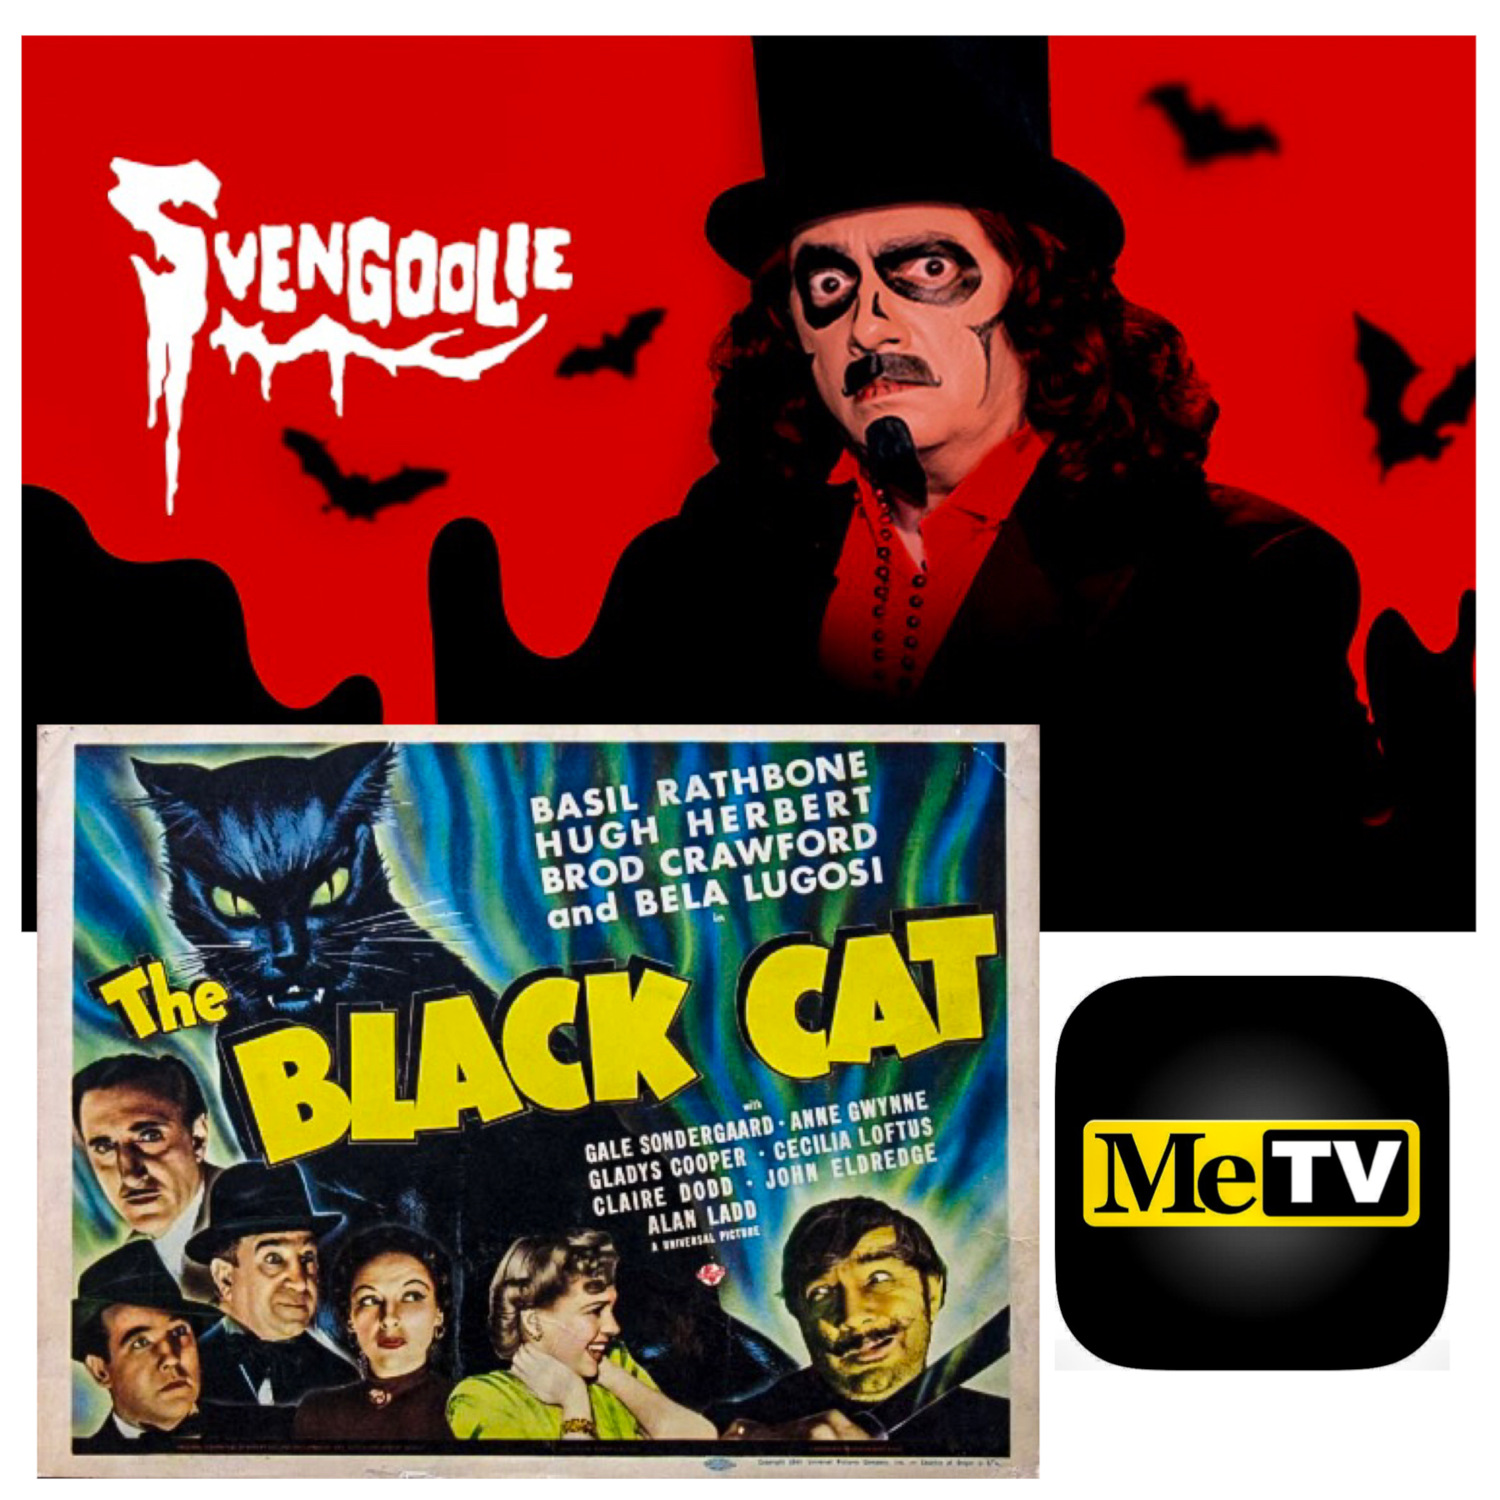 the-black-cat-1941-svengoolie-metv.jpg